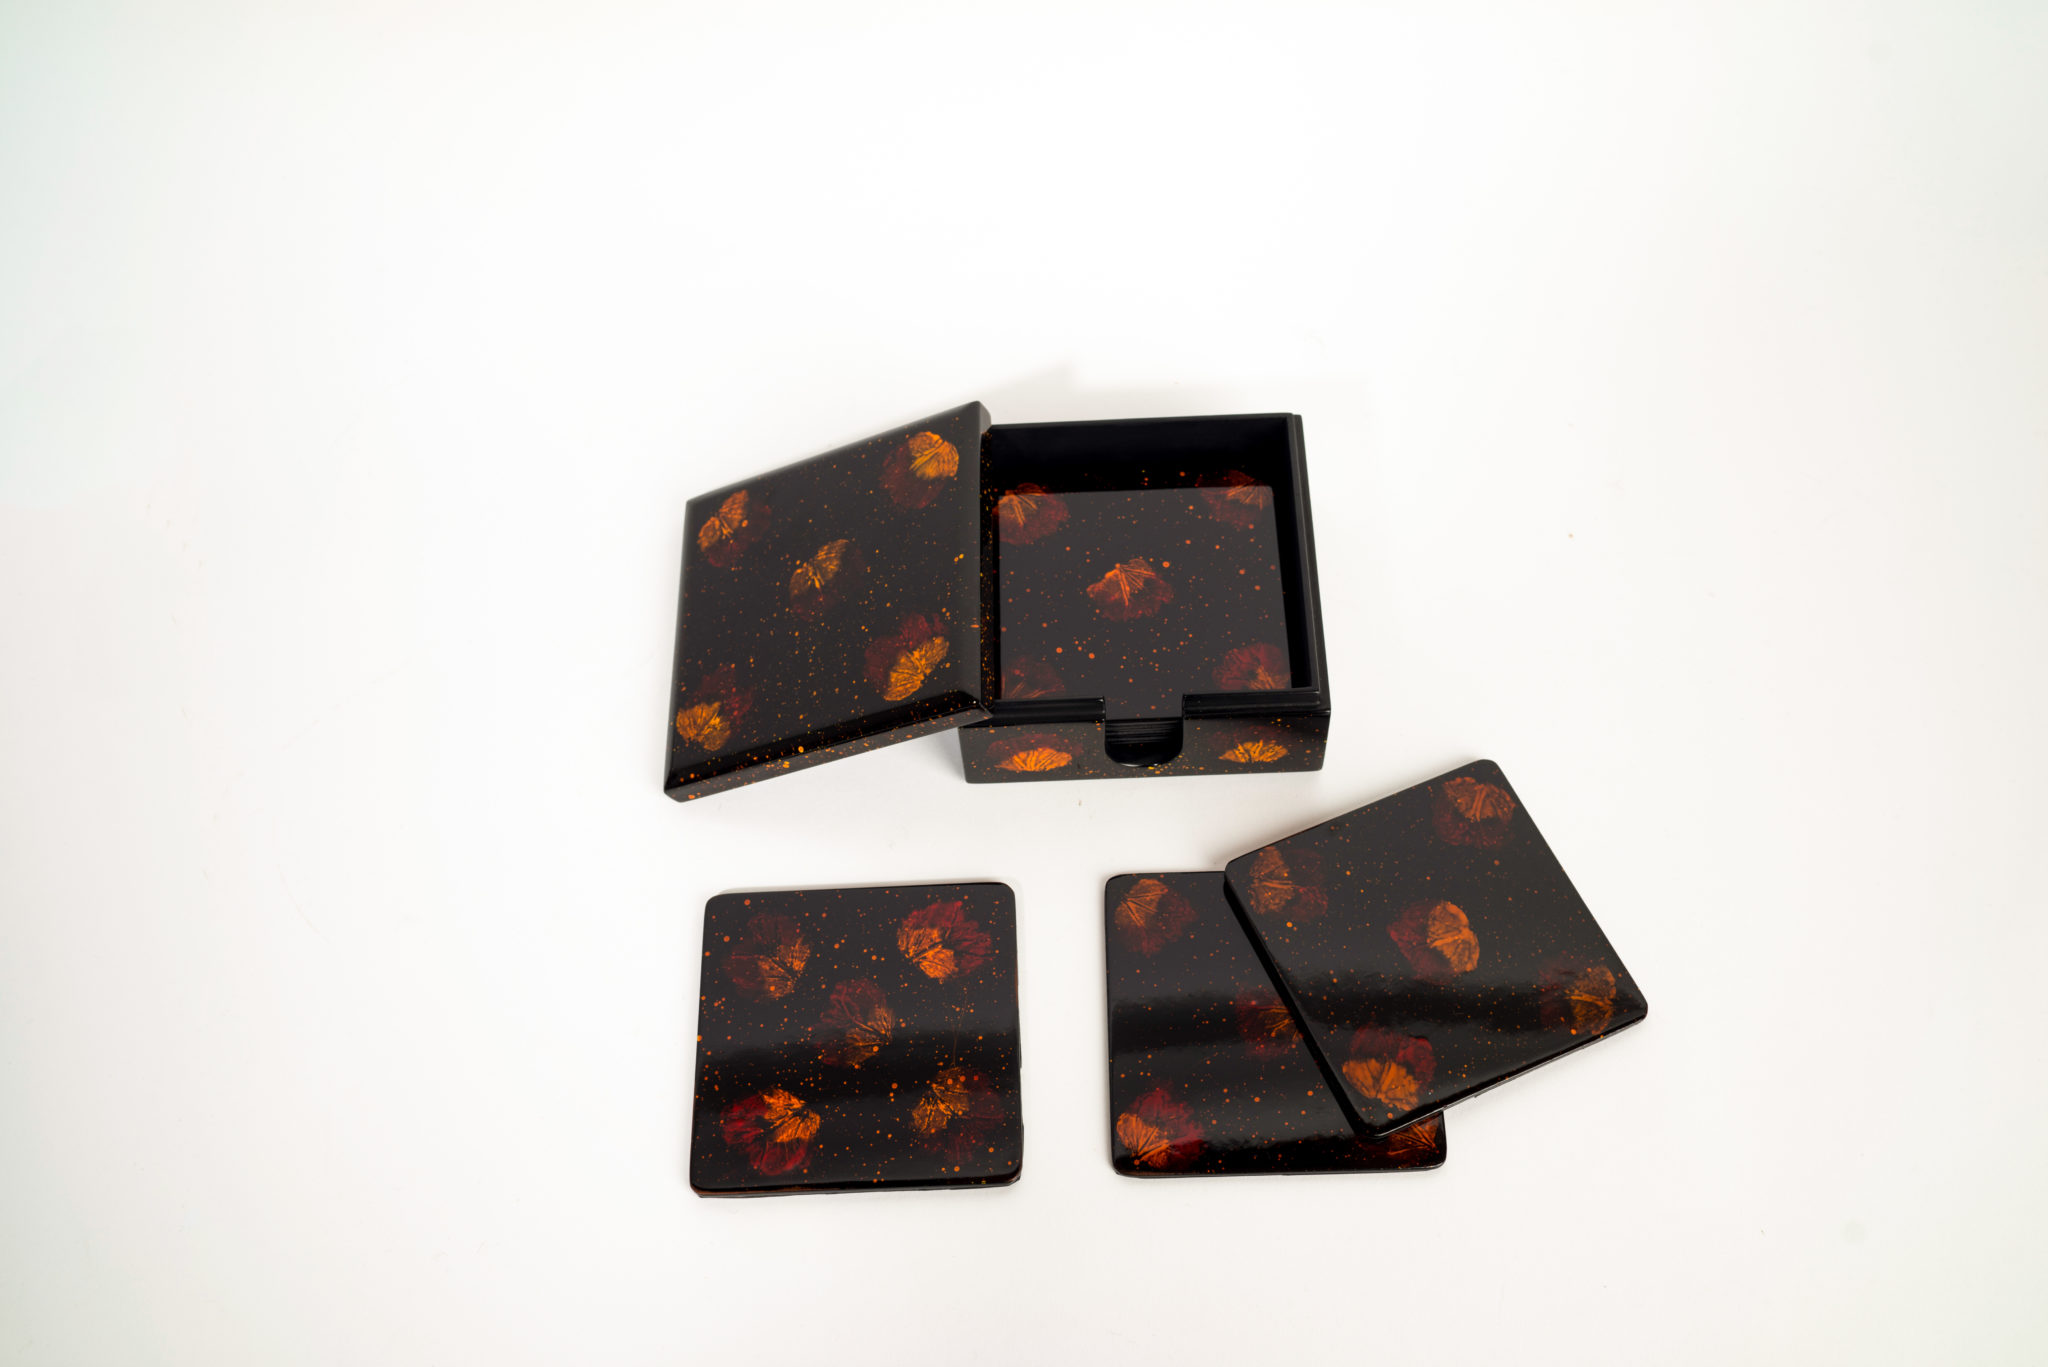 Set of eight pressed flower wooden lacquer coasters and matching wooden lacquer box showing lid removed.